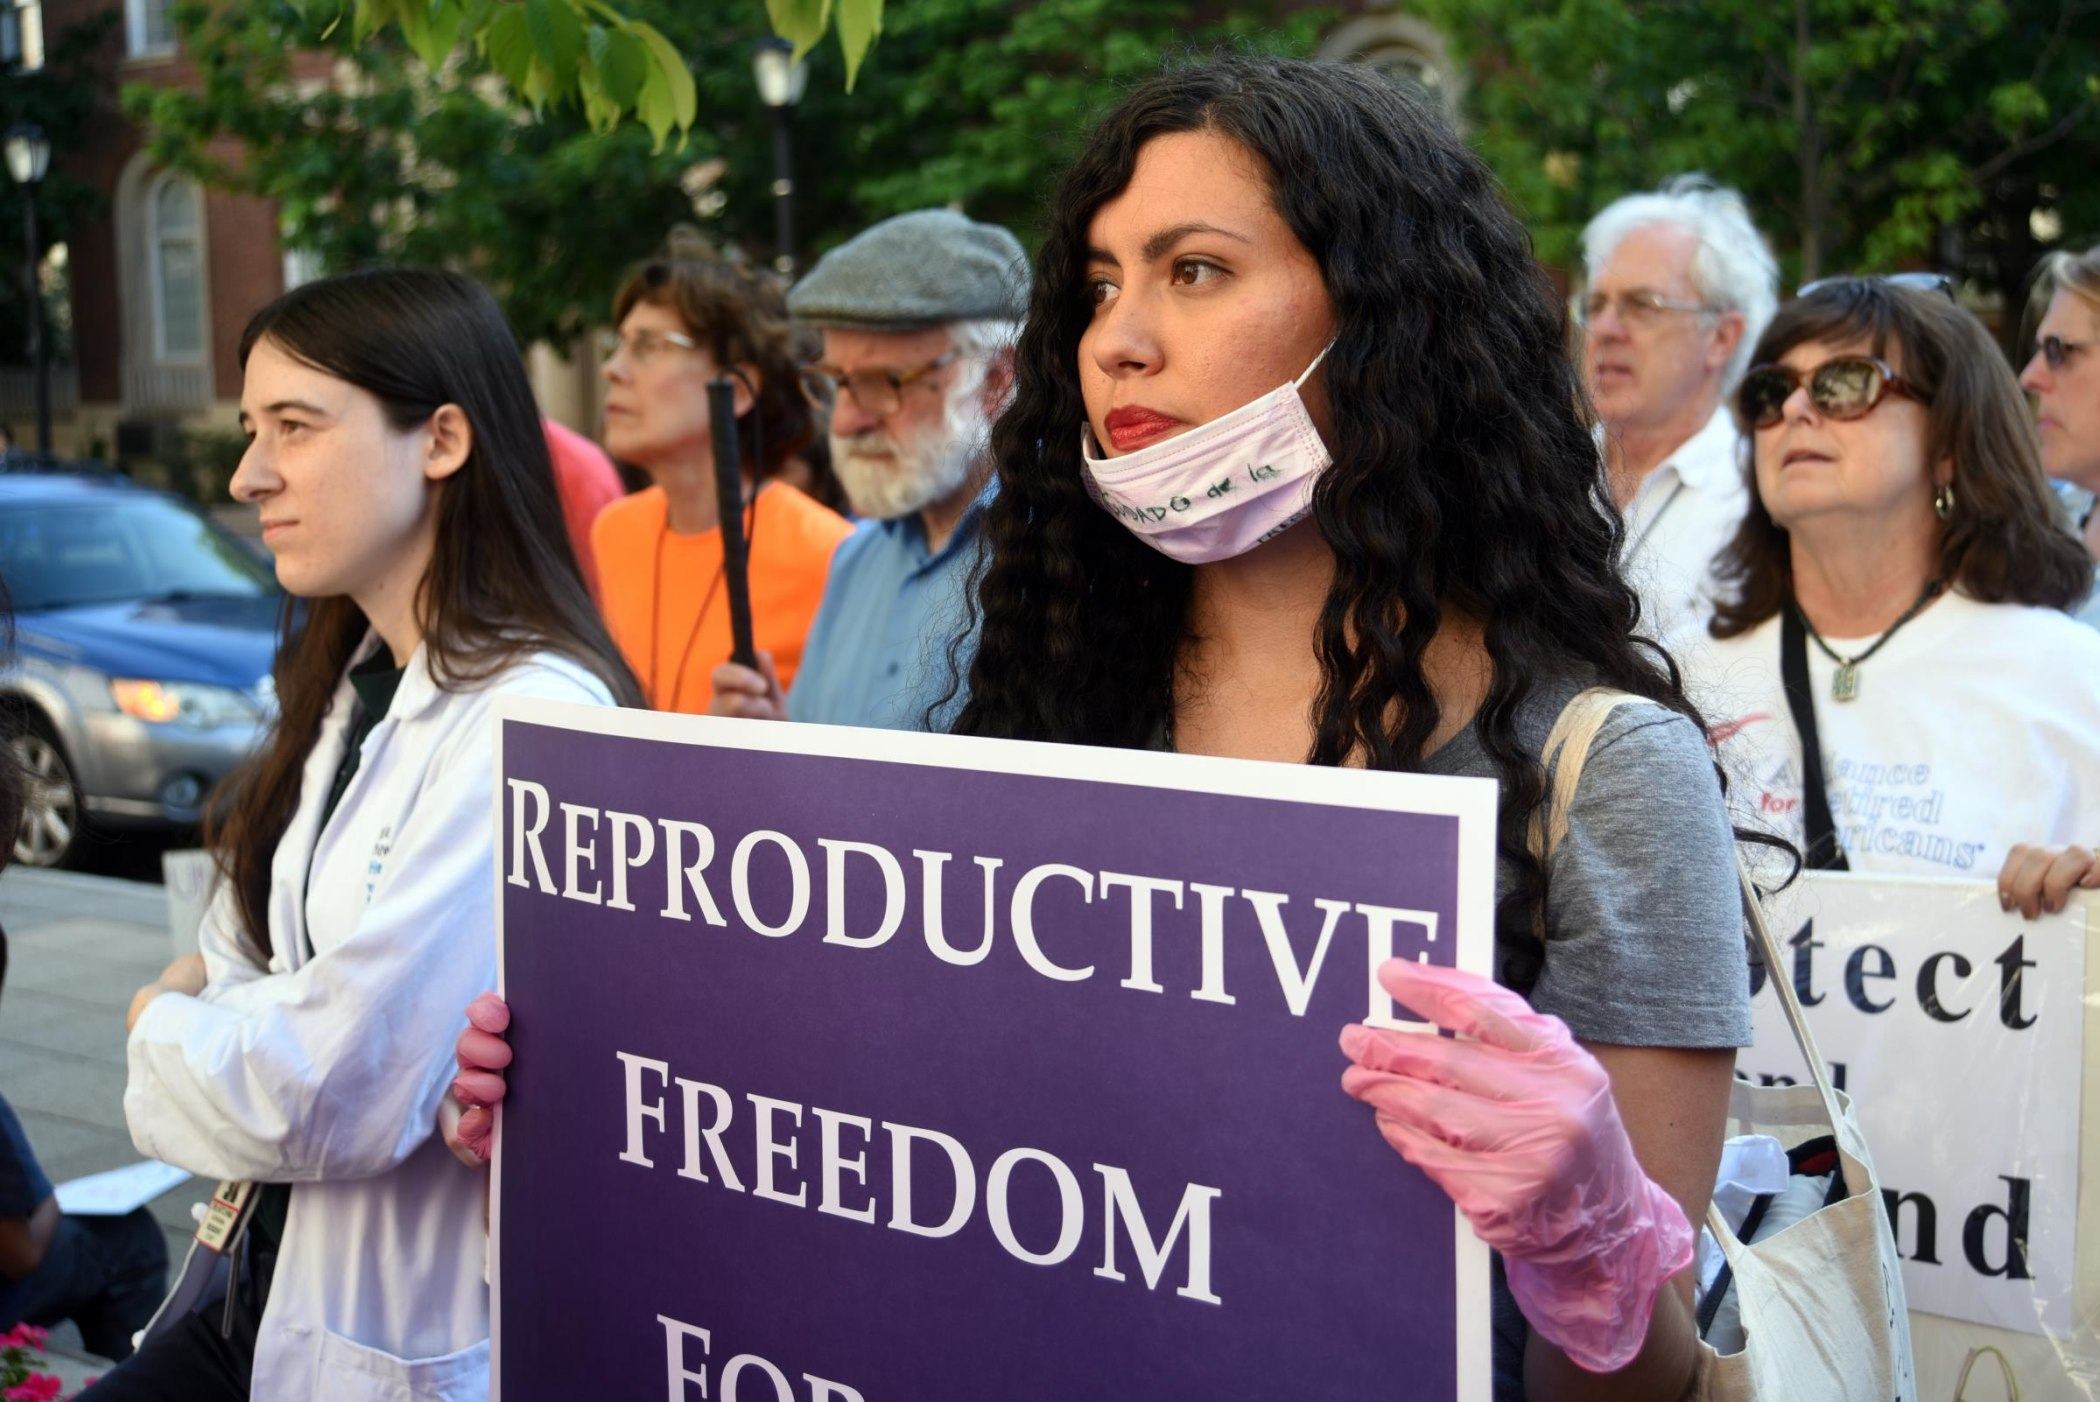 Participants came in support of a broad range of issues, from health care to abortion rights.